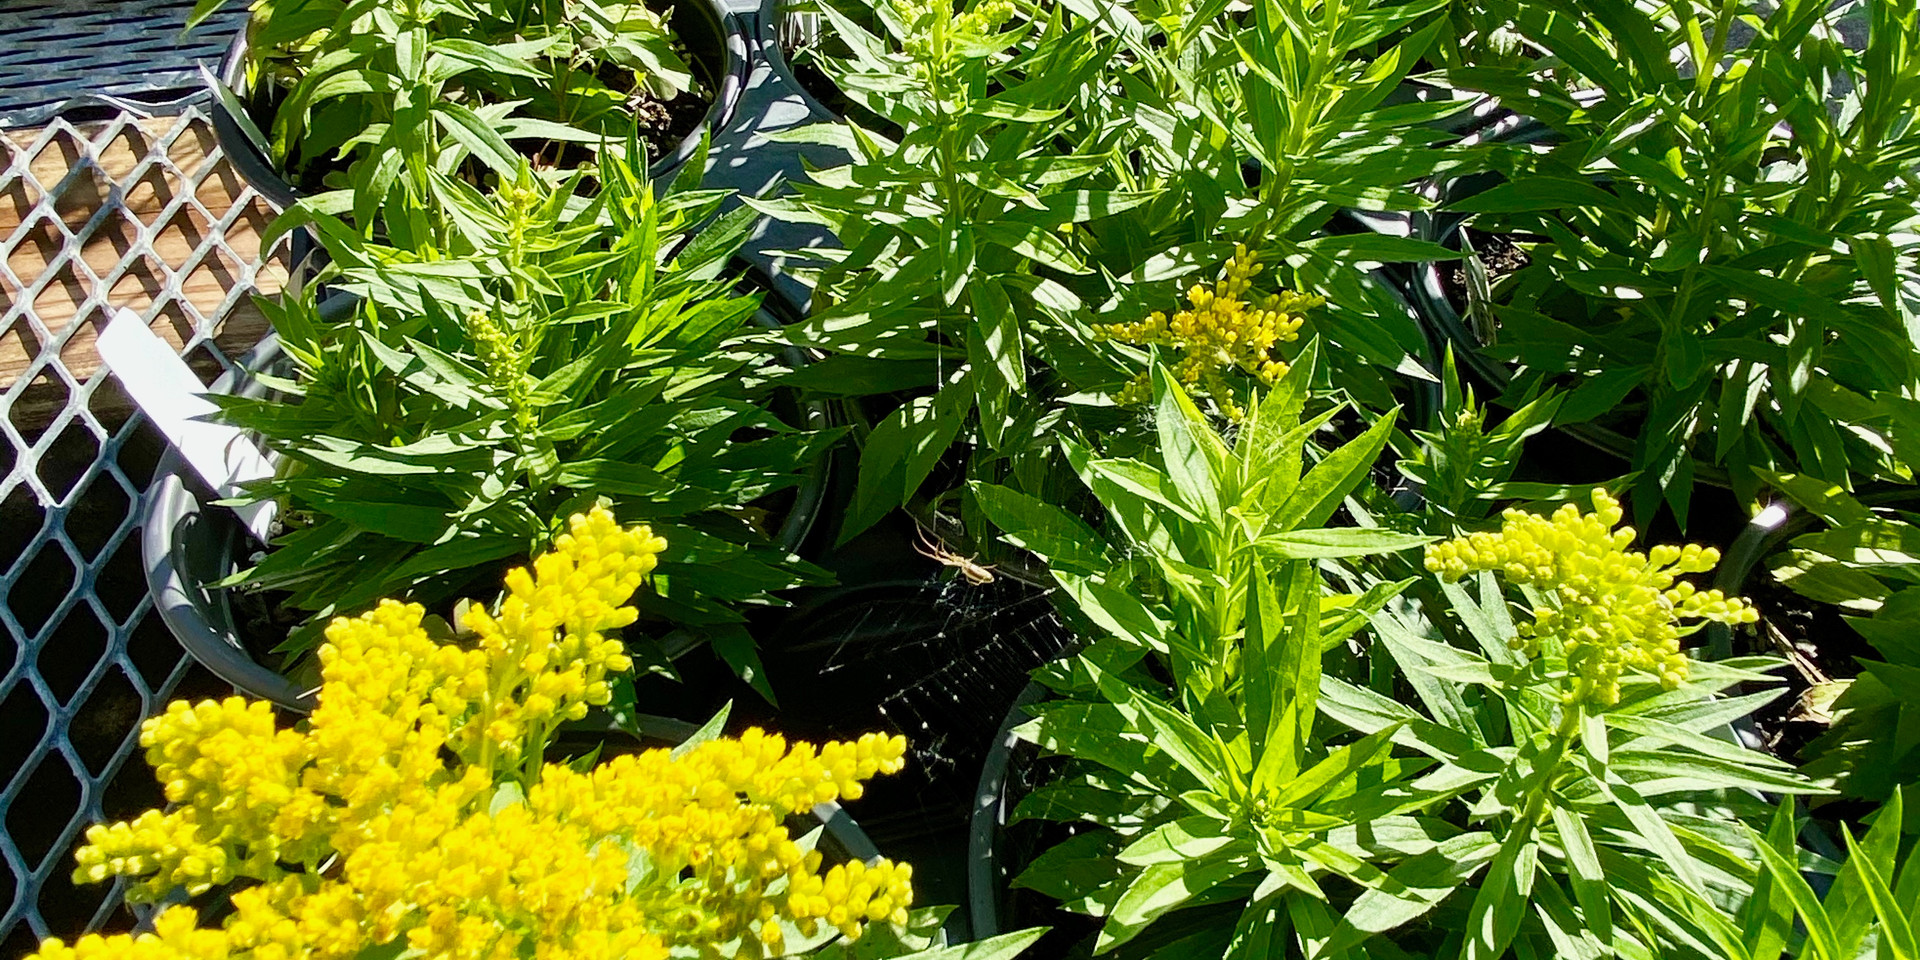 We have several varieties of Goldenrod for your pollinators!